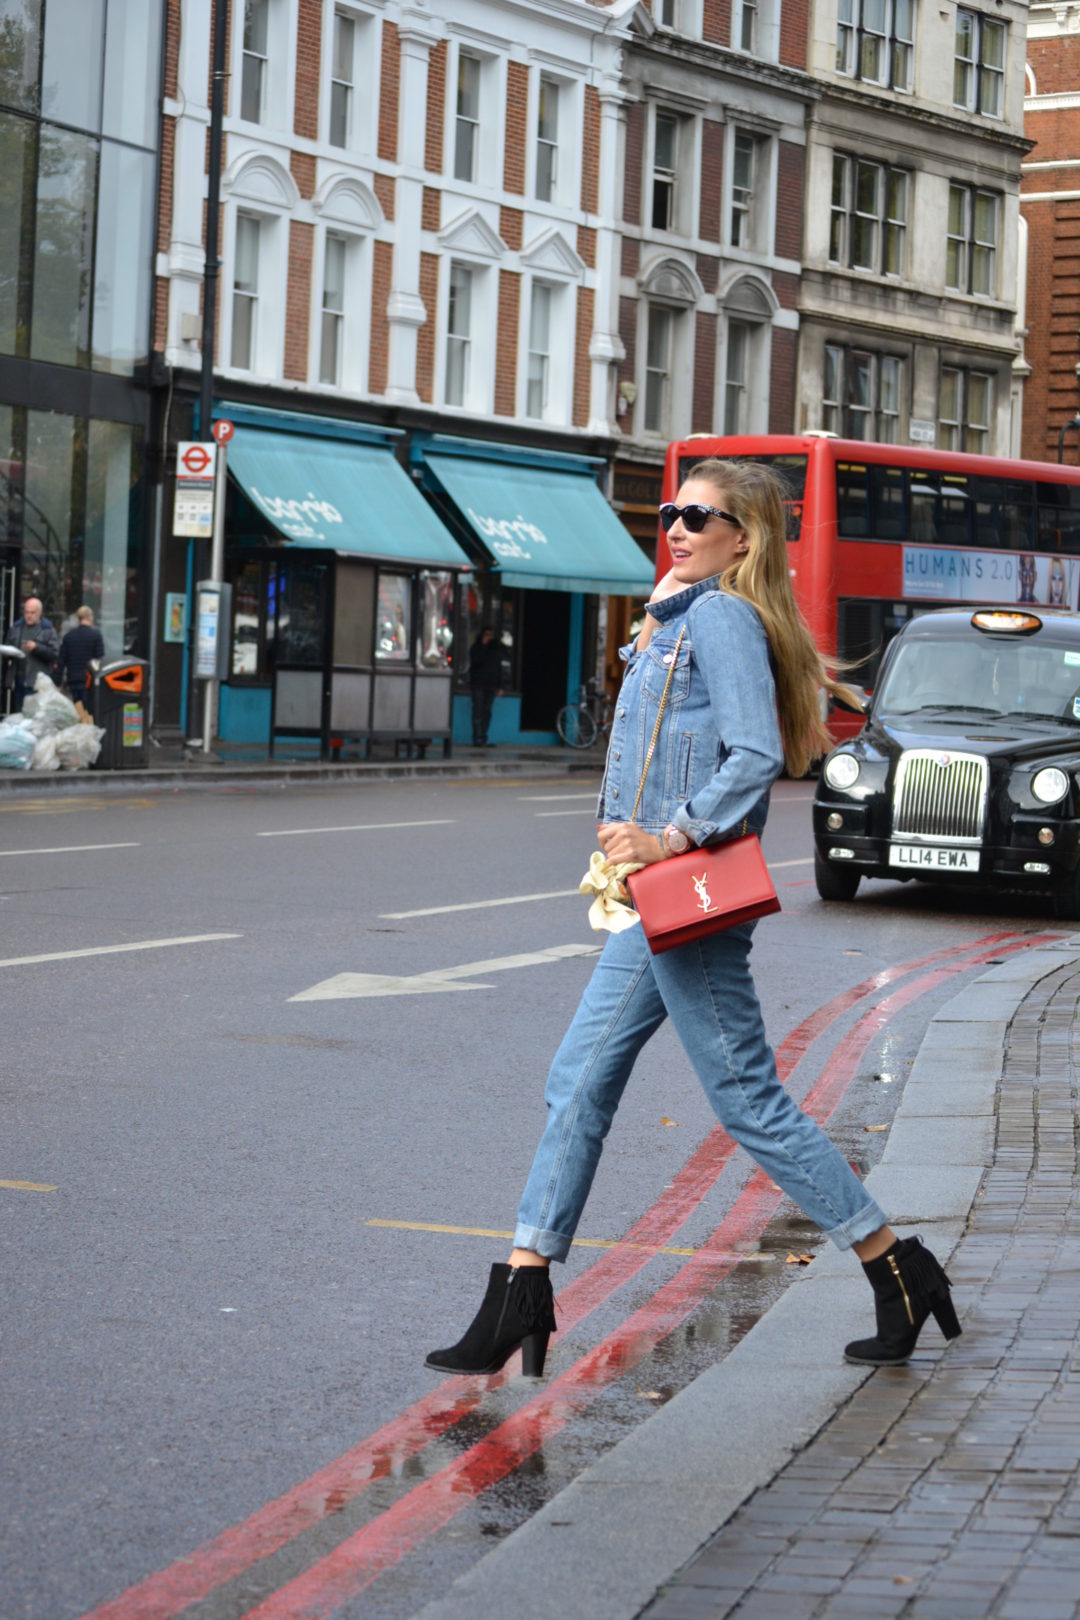 double_denim_primark_shoreditch_lara_martin_gilarranz_bymyheels_londres_yves_saint_laurent-20